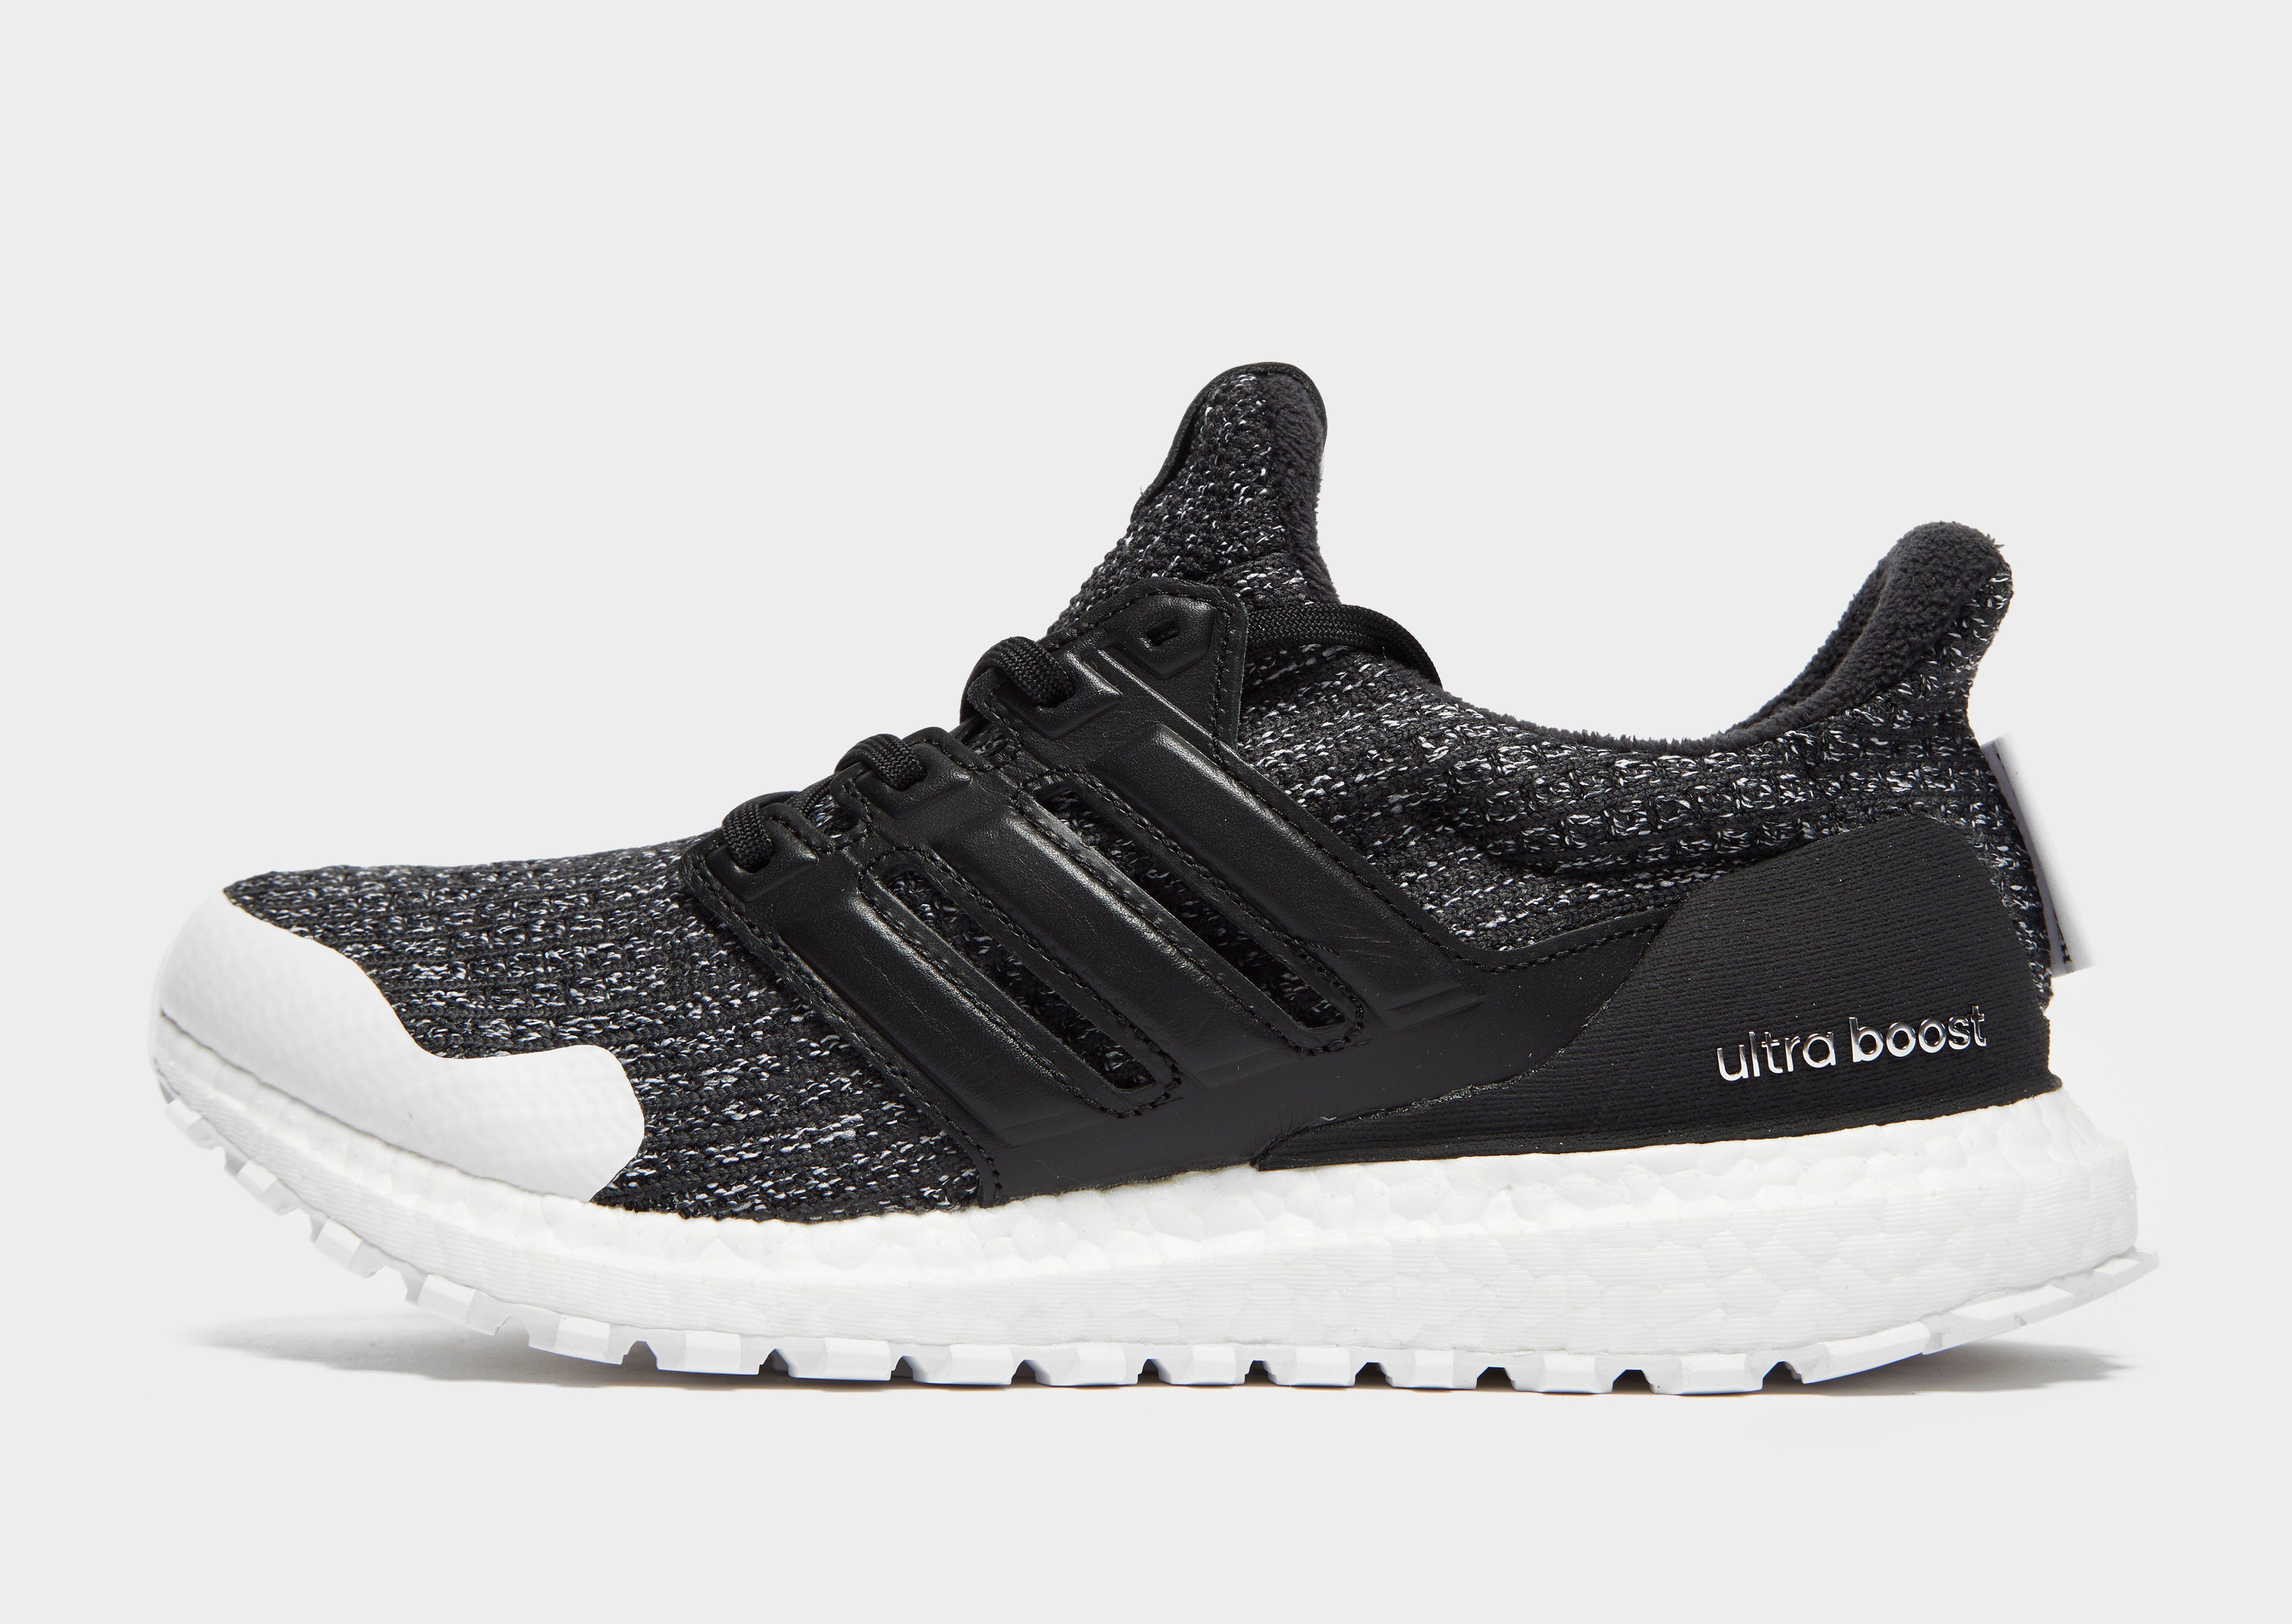 d14c0a62a5d2b ADIDAS Ultraboost x Game Of Thrones Shoes